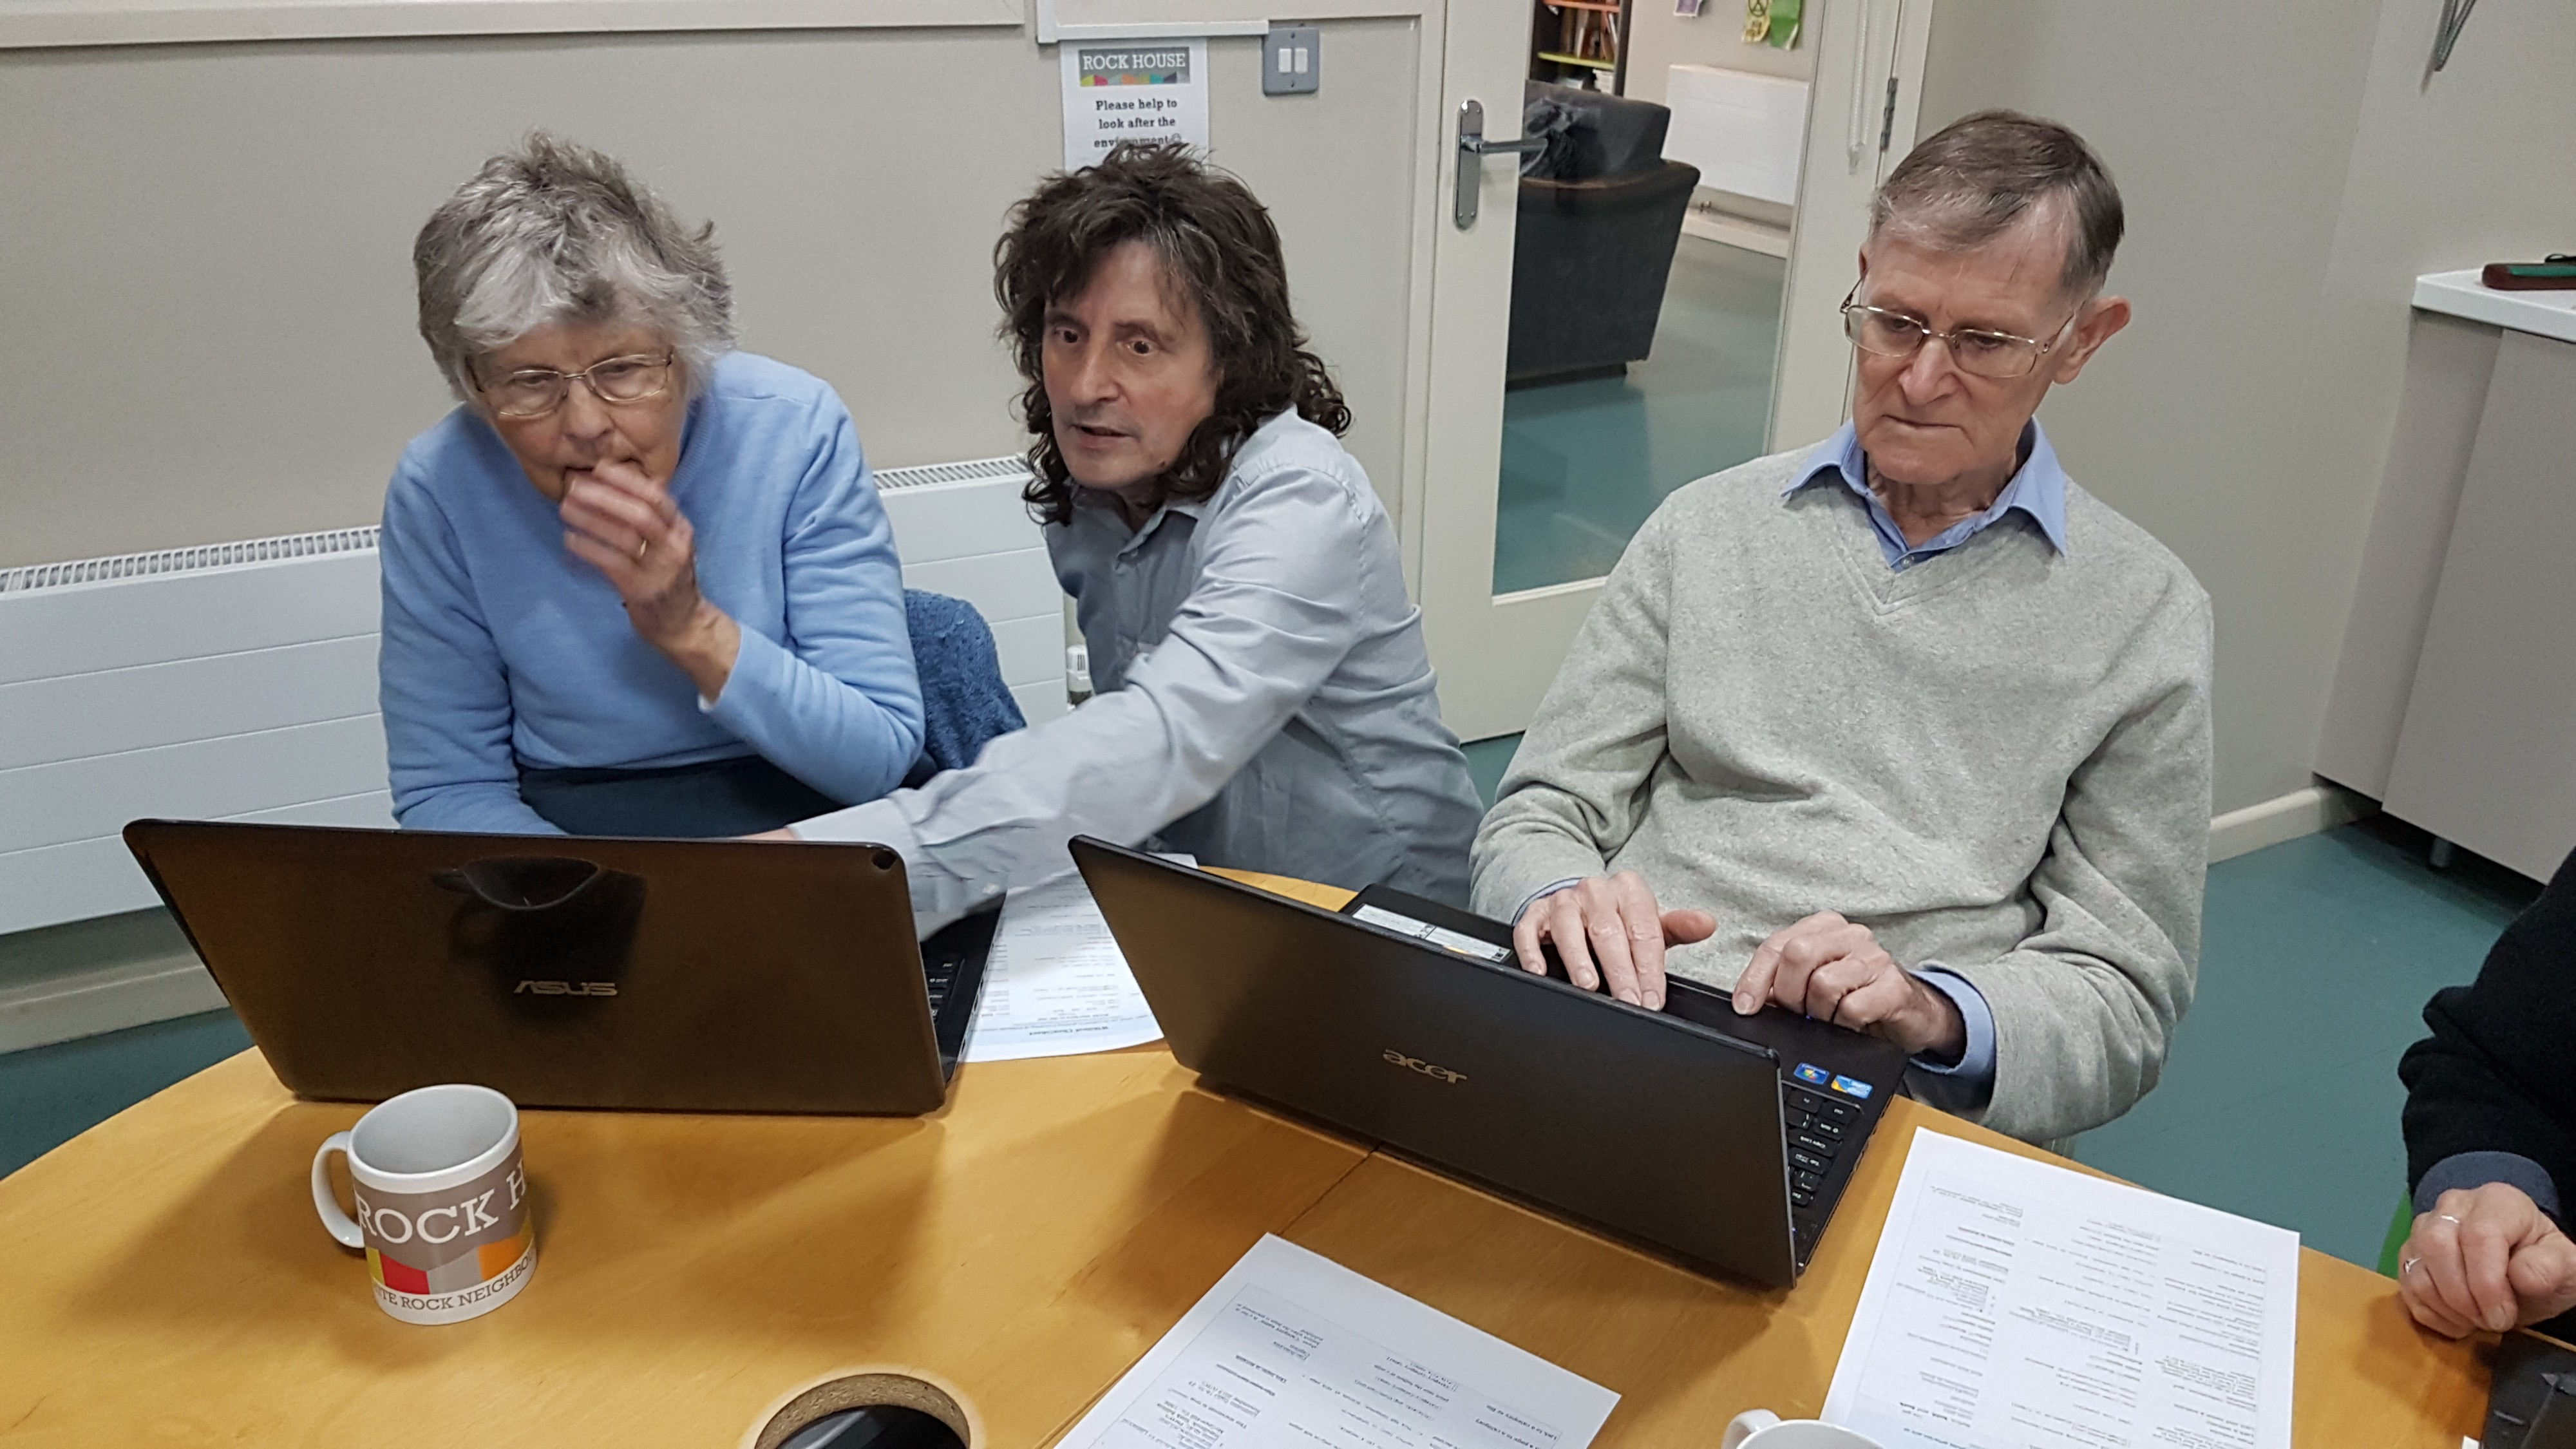 shows a man in the centre of three people looking at two laptops